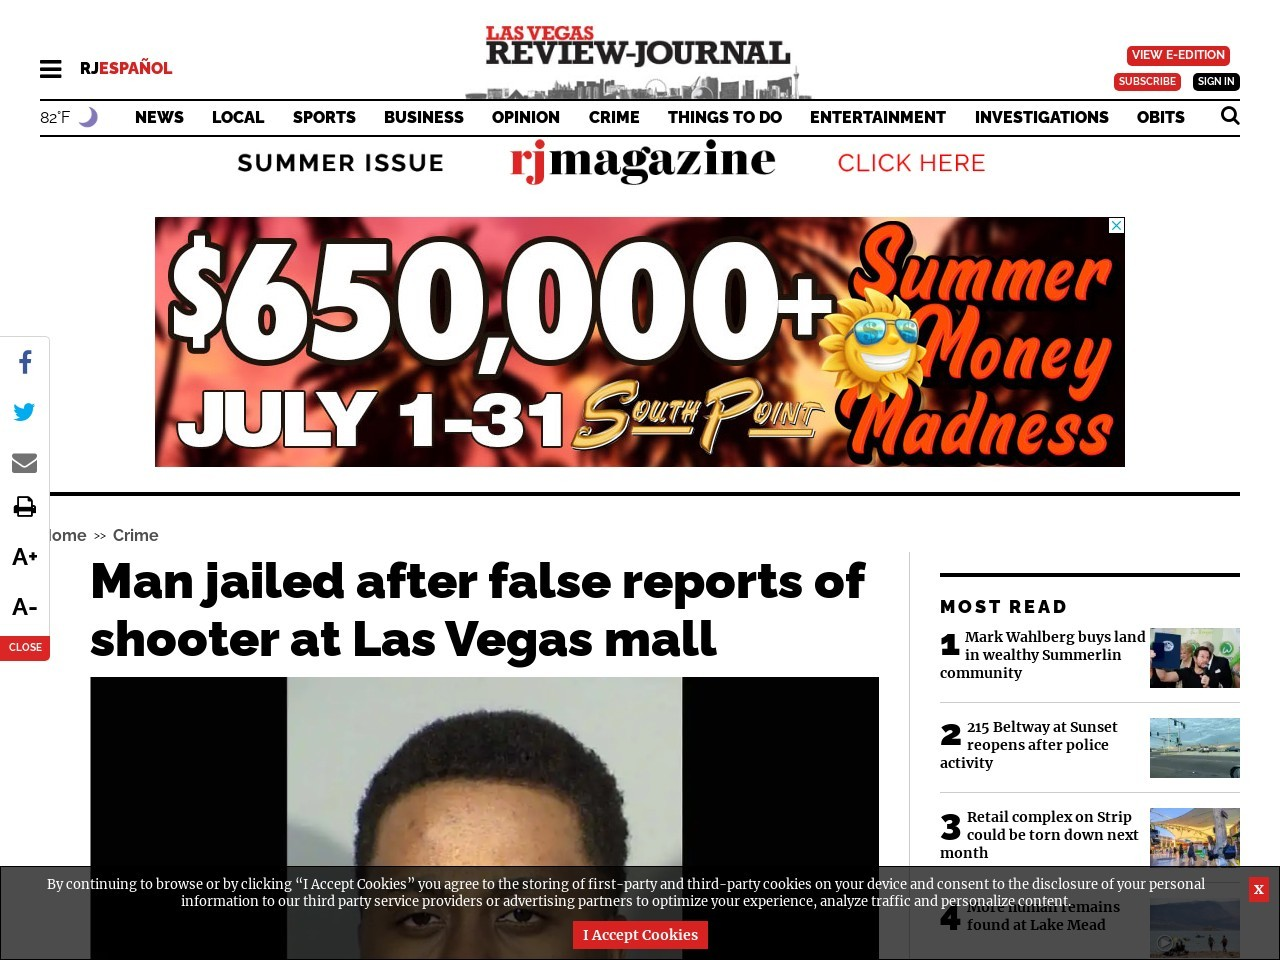 Man jailed after false reports of shooter at Las Vegas mall